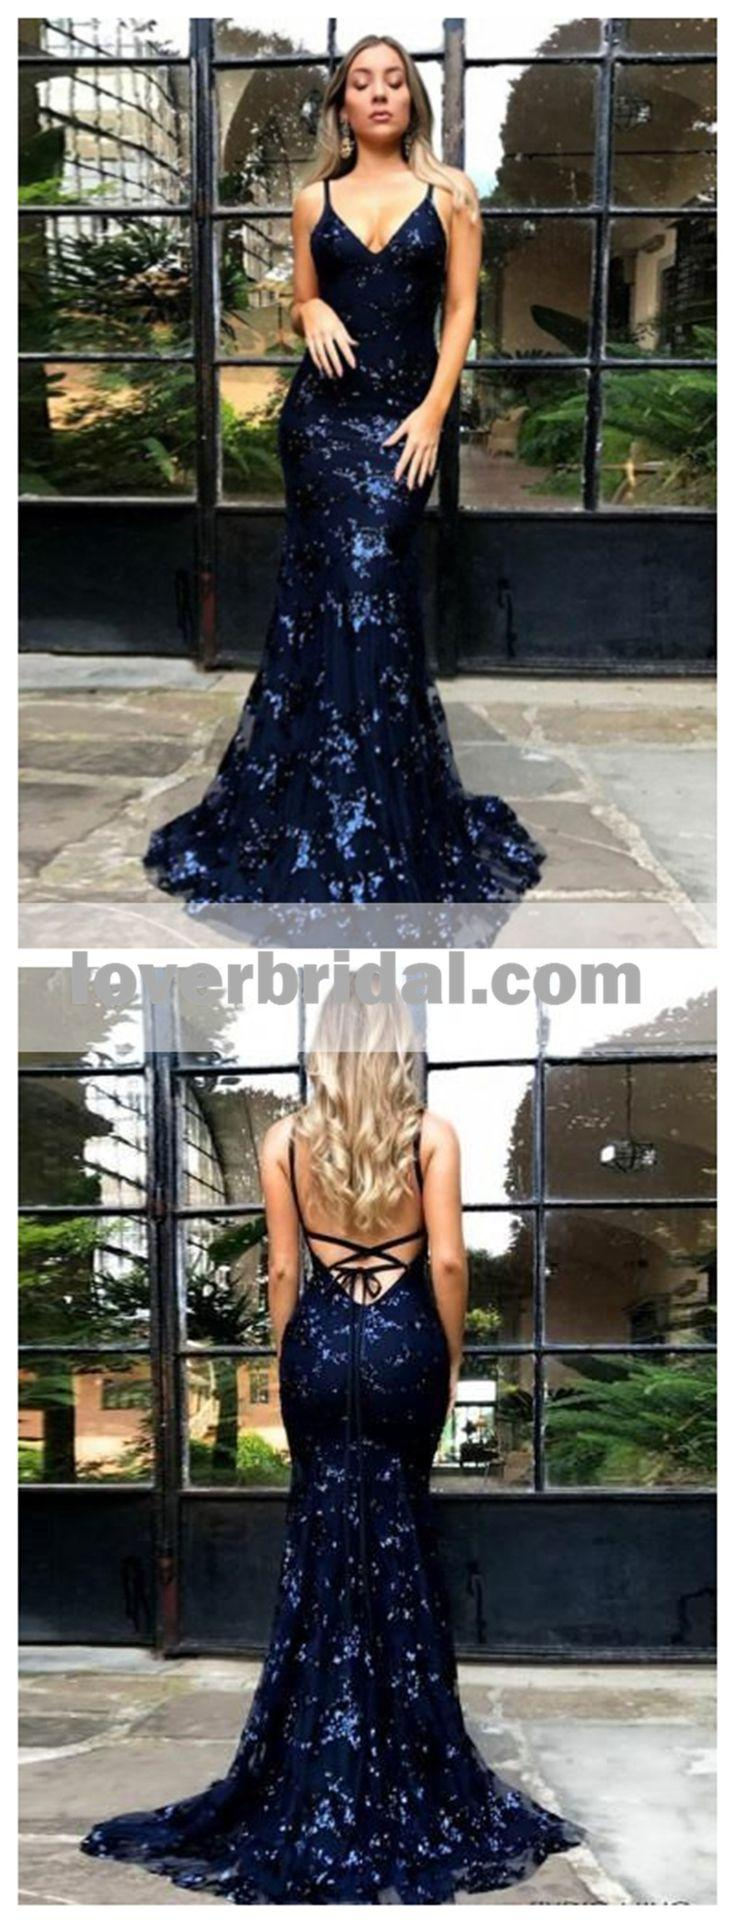 Wedding - Sparkly Backless Navy Sequin Mermaid Long Evening Prom Dresses, 17707